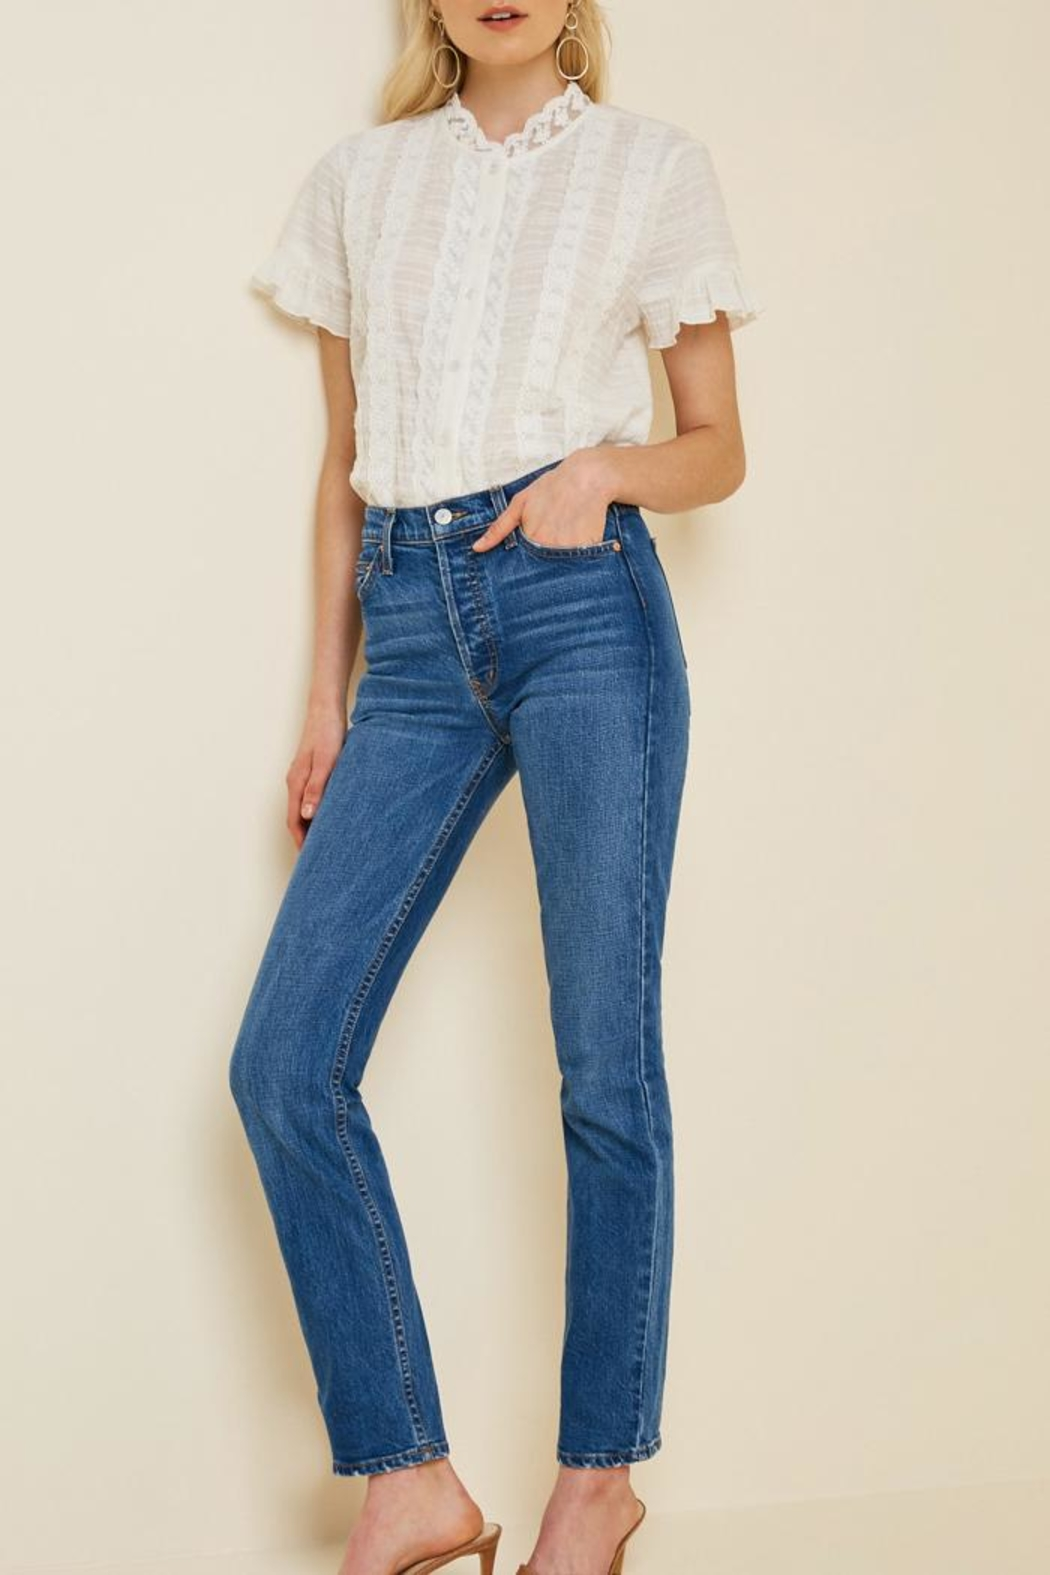 Hayden Los Angeles Ruffle Lace Blouse - Back Cropped Image